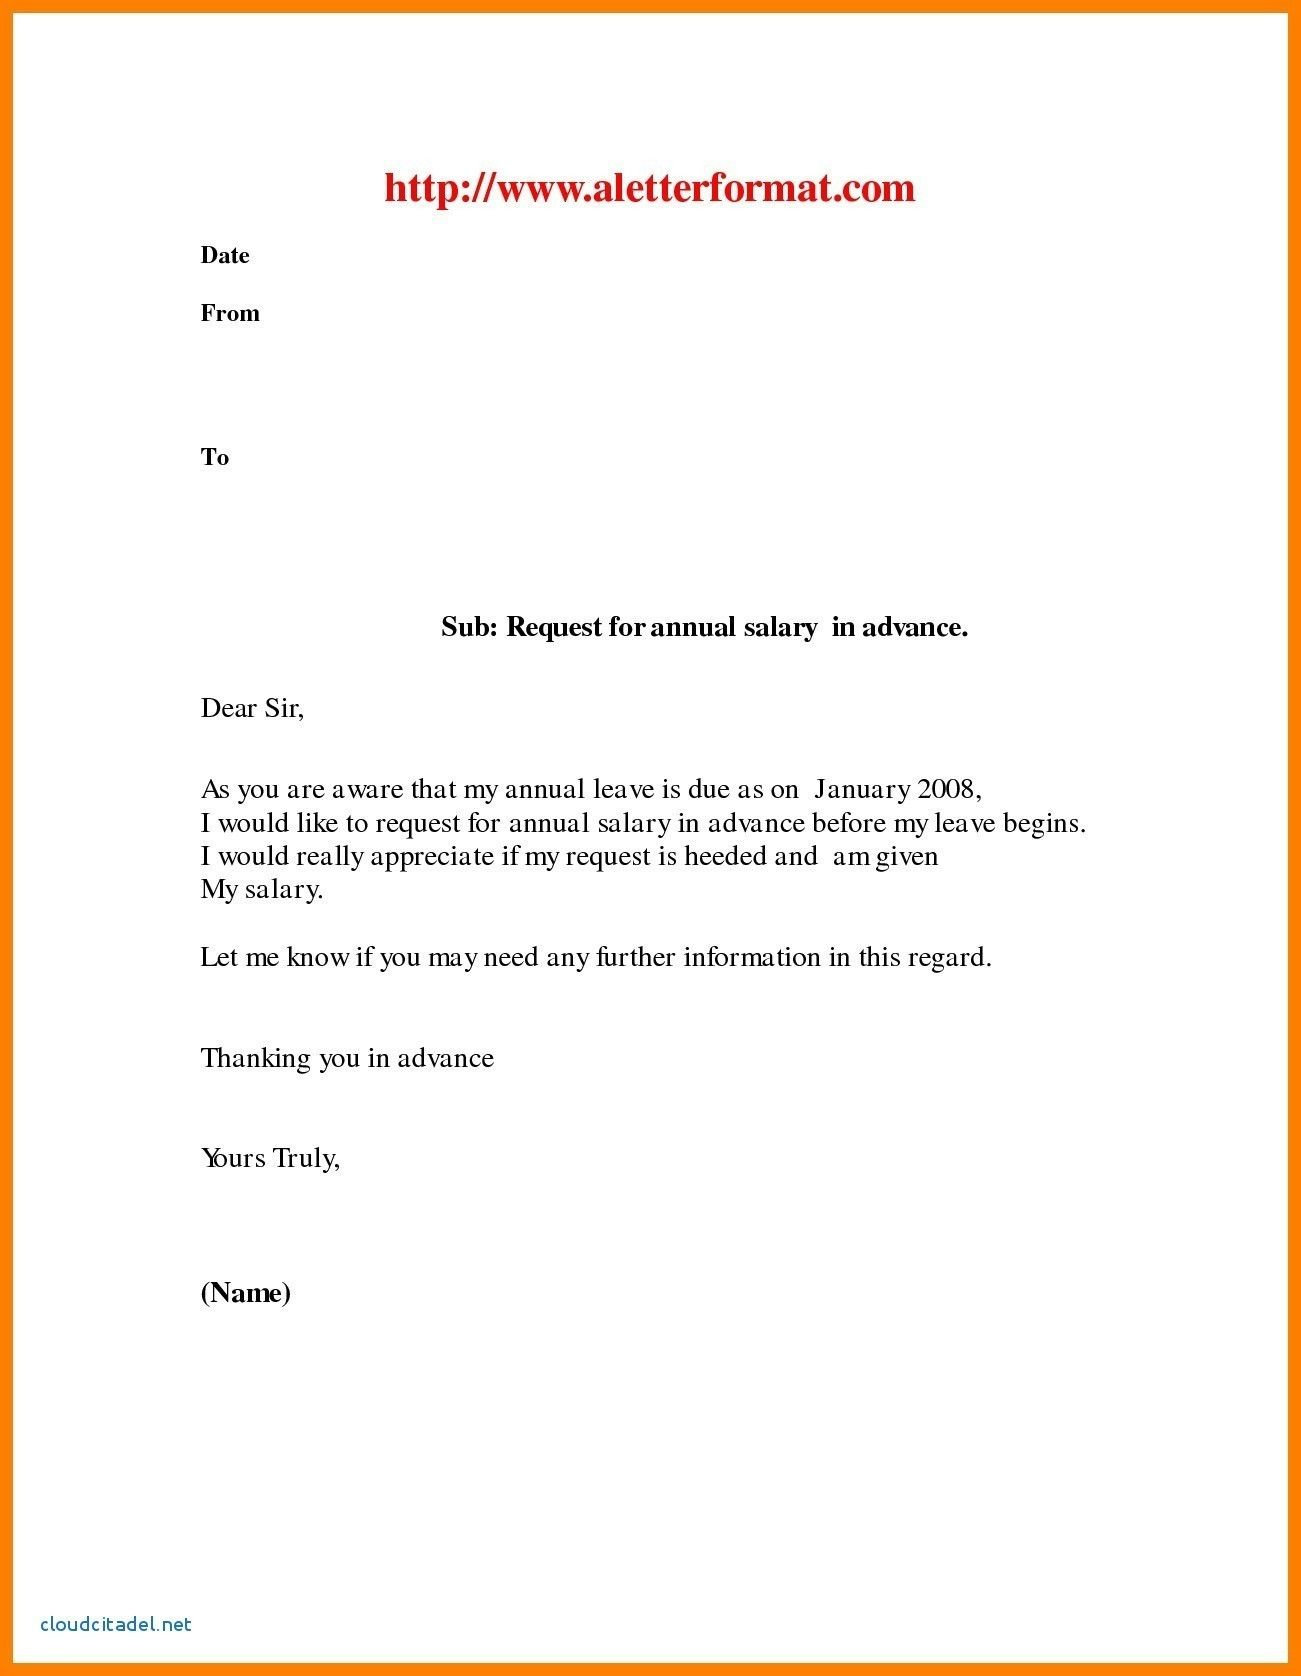 2a44afeb26e8ec1108d0354db6de0dee Sample Application Letter For Holiday Job on for students, for teaching, nurse cover,